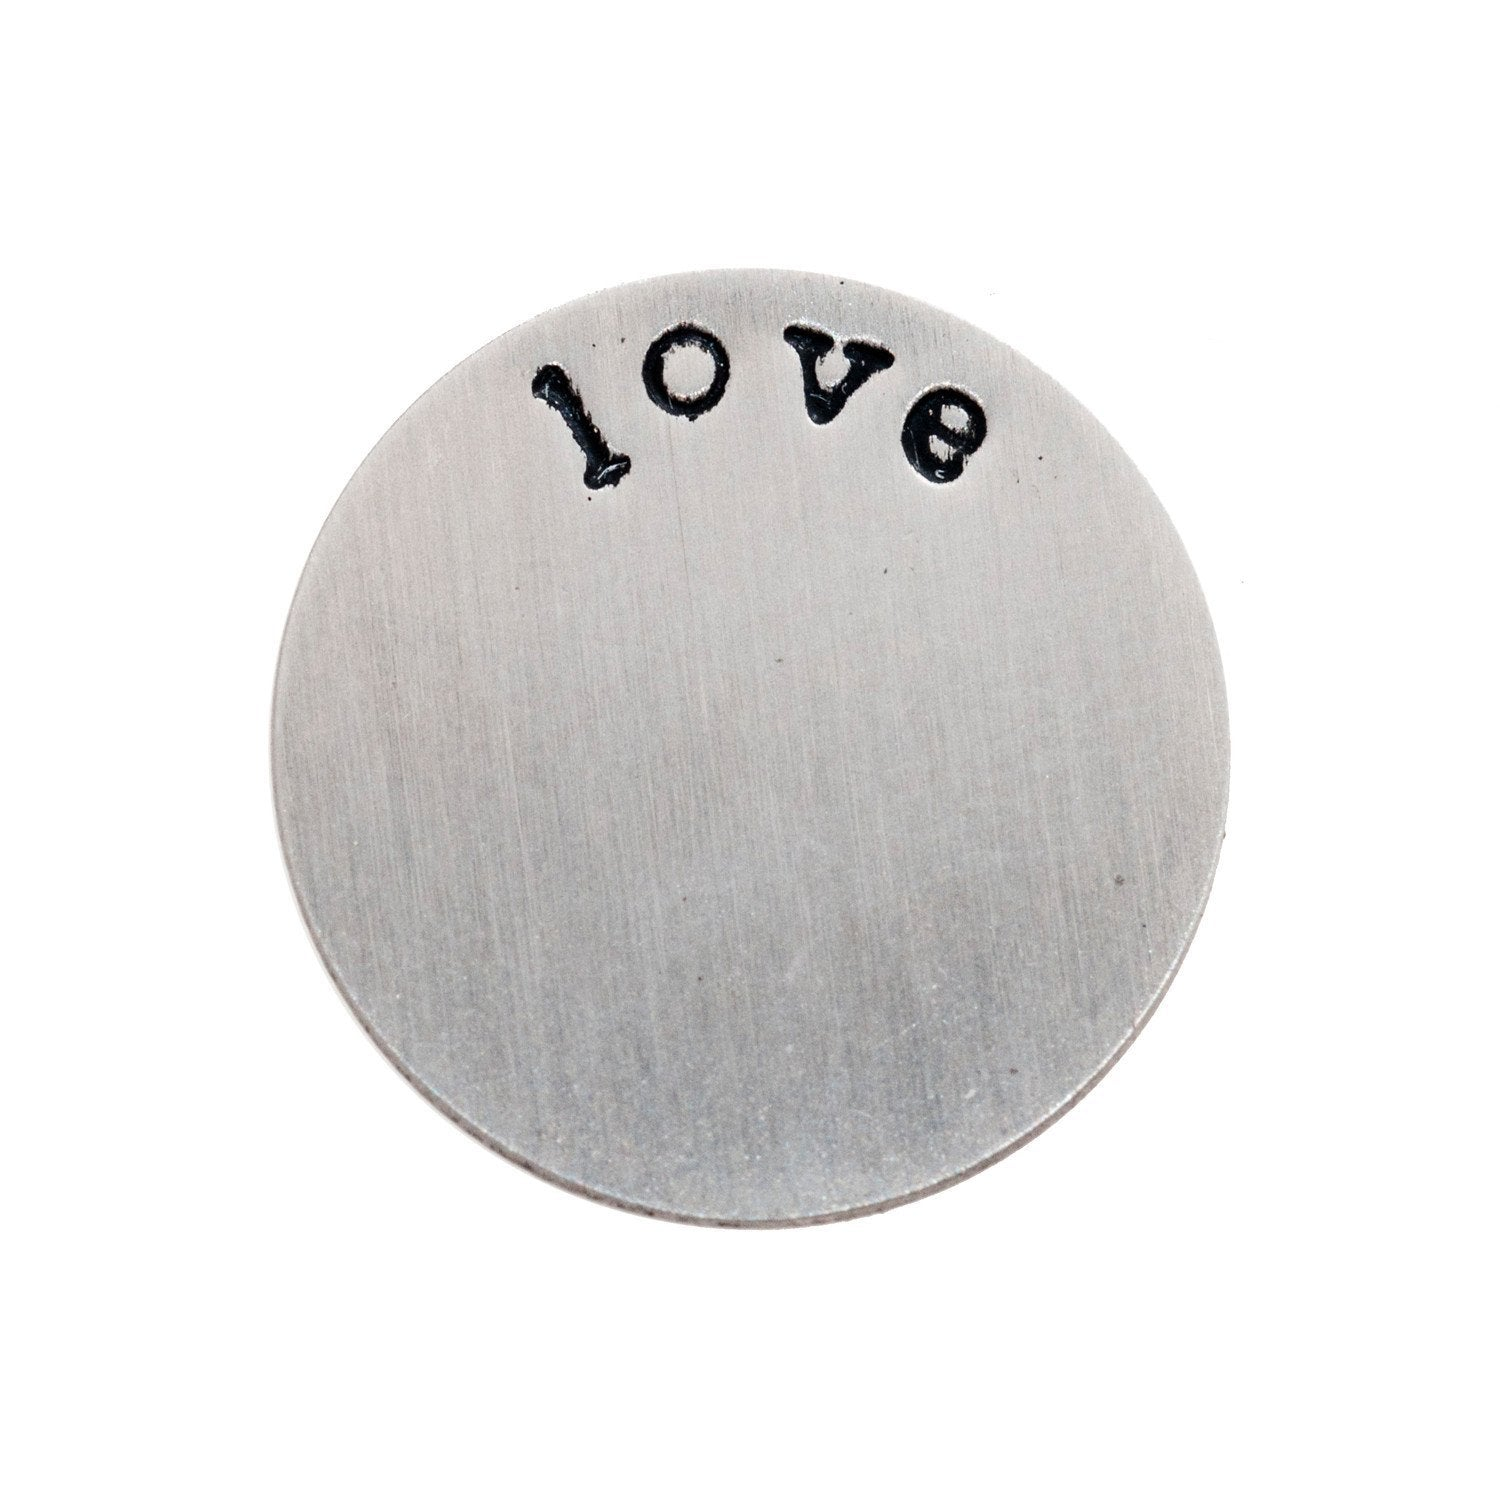 Back plate for use with medium lockets – 'love'